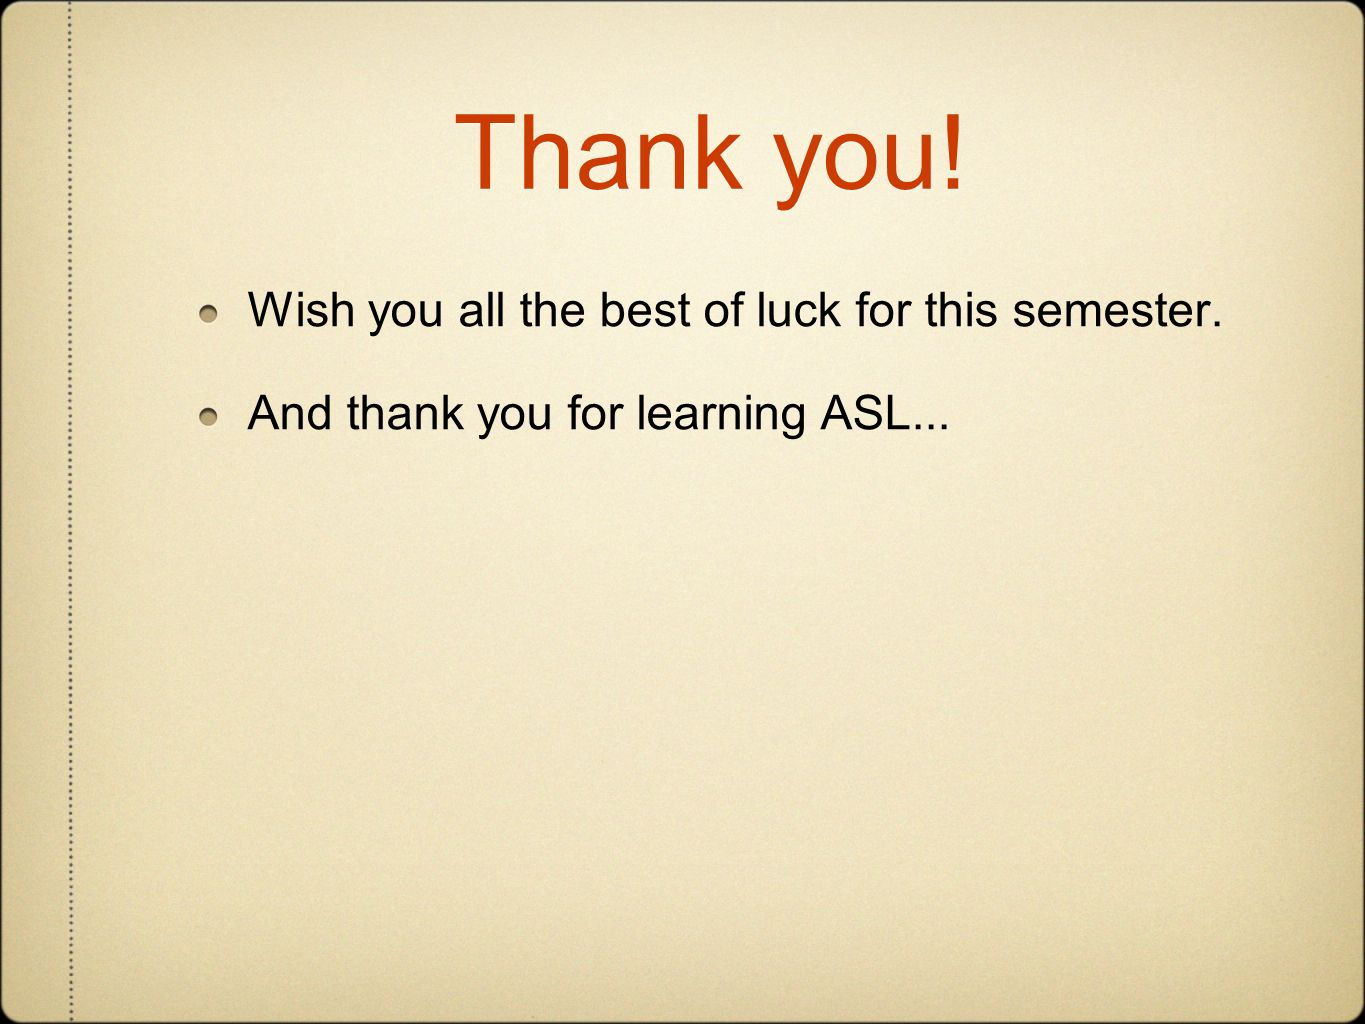 Thank you! Wish you all the best of luck for this semester. And thank you for learning ASL...